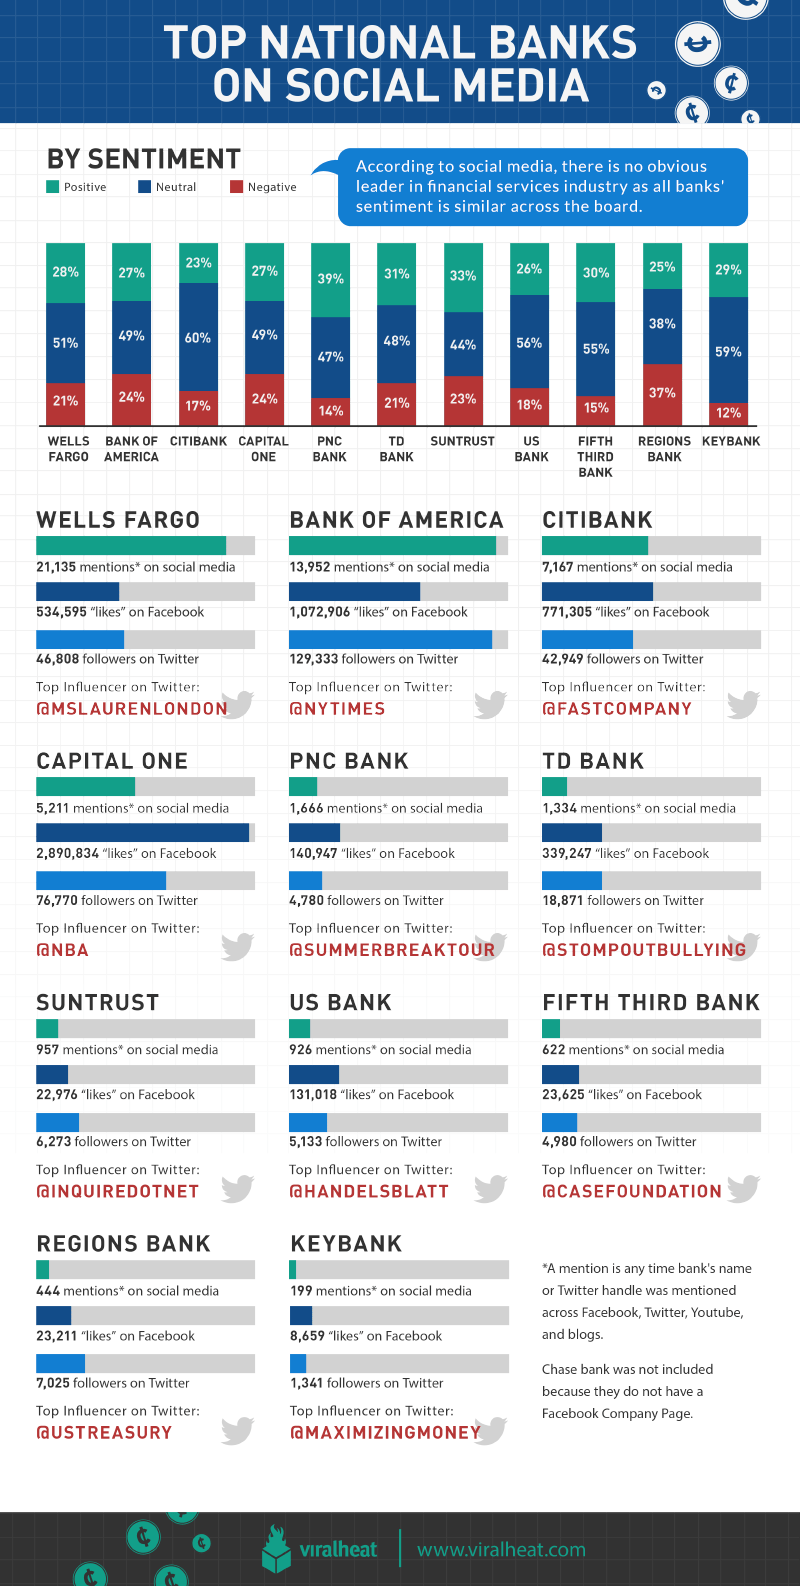 Top National Banks On Social Media